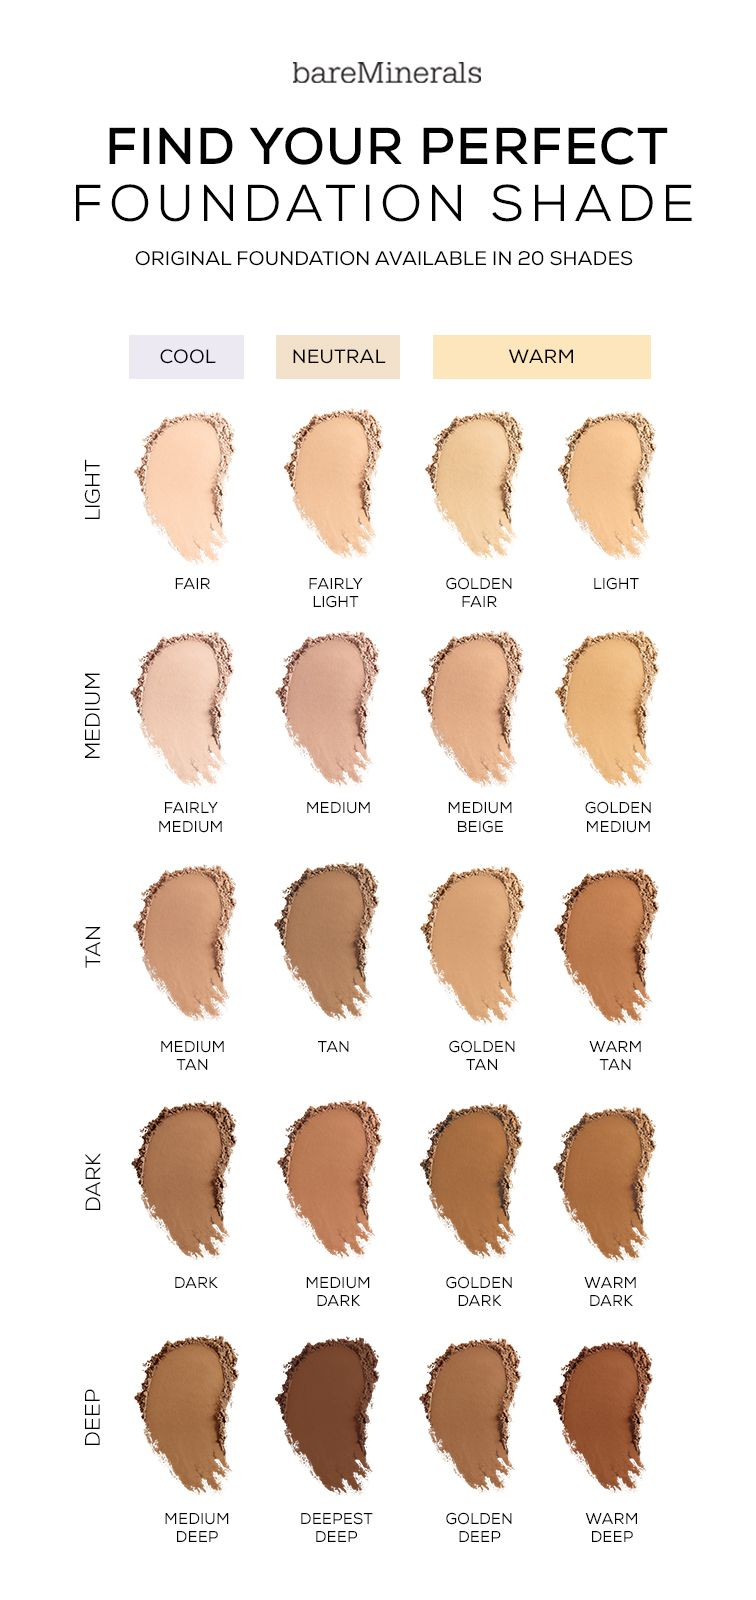 Nyx Stay Matte But Not Flat Powder Foundation Shade Finder Original Foundation Gives You A Flawless Coverage With A No Makeup Look And Feel That Lasts Up To 8 Hours When Choosing A Skin Makeup Makeup Skin Care Makeup